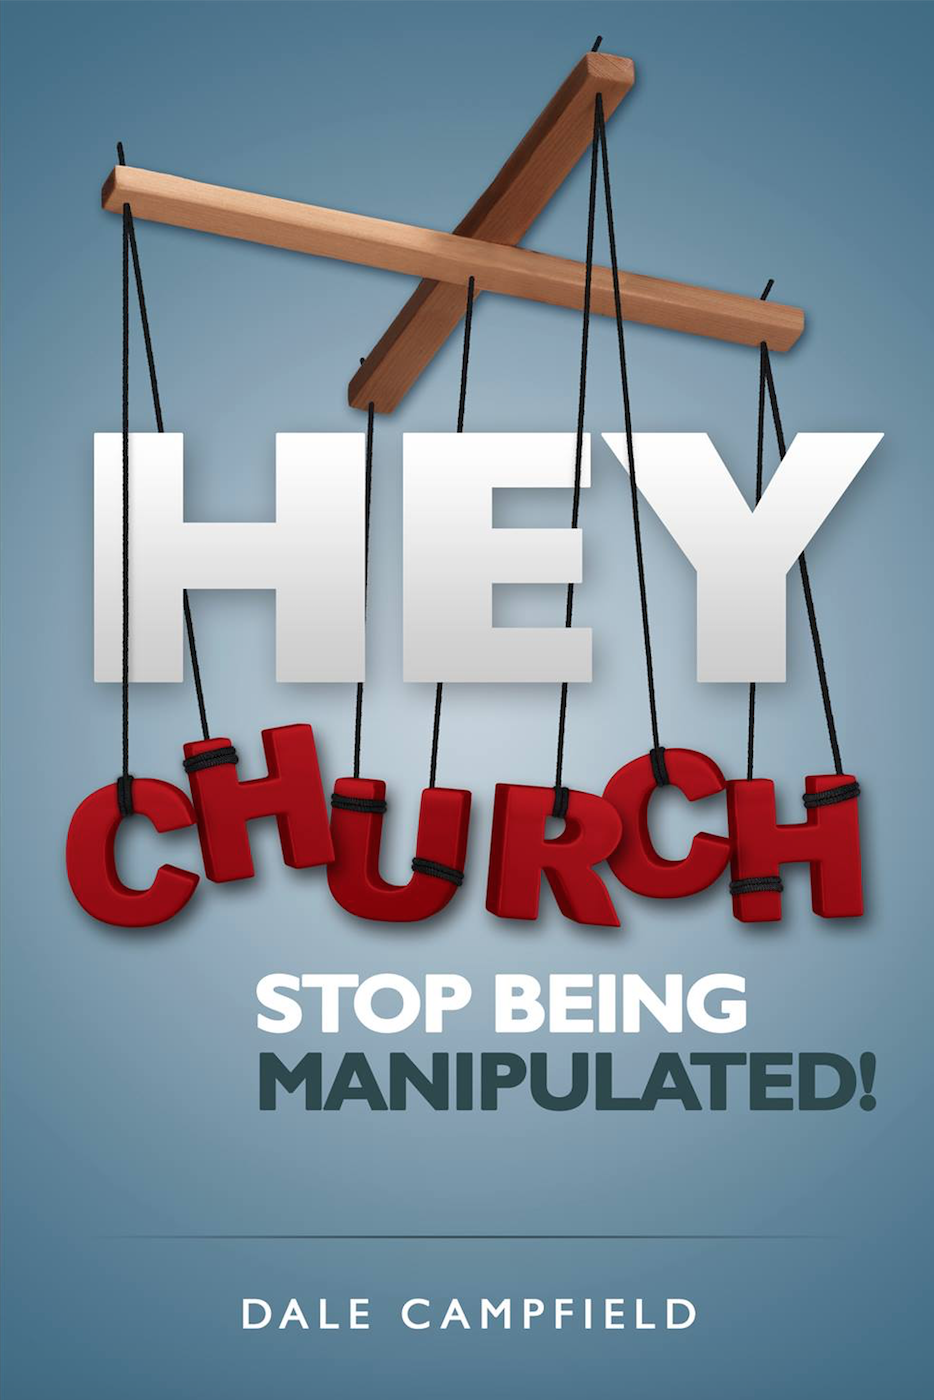 """Hey Church, Stop Being Manipulated! - Author Dale Campfield writes, """"Though this topic of manipulation might be a tough message, I am compelled to share it. I believe many of us, including myself, have misused our spiritual authority over people for too long and it must stop. It's time for spiritual leaders to stop manipulating the Church, and it's time for the Church to stop being manipulated. As long as the Church will allow itself to be manipulated by spiritual authority, she will never arise to the fullness of her call to accomplish her Kingdom Assignments. Hey, Church, stop being manipulated!"""""""